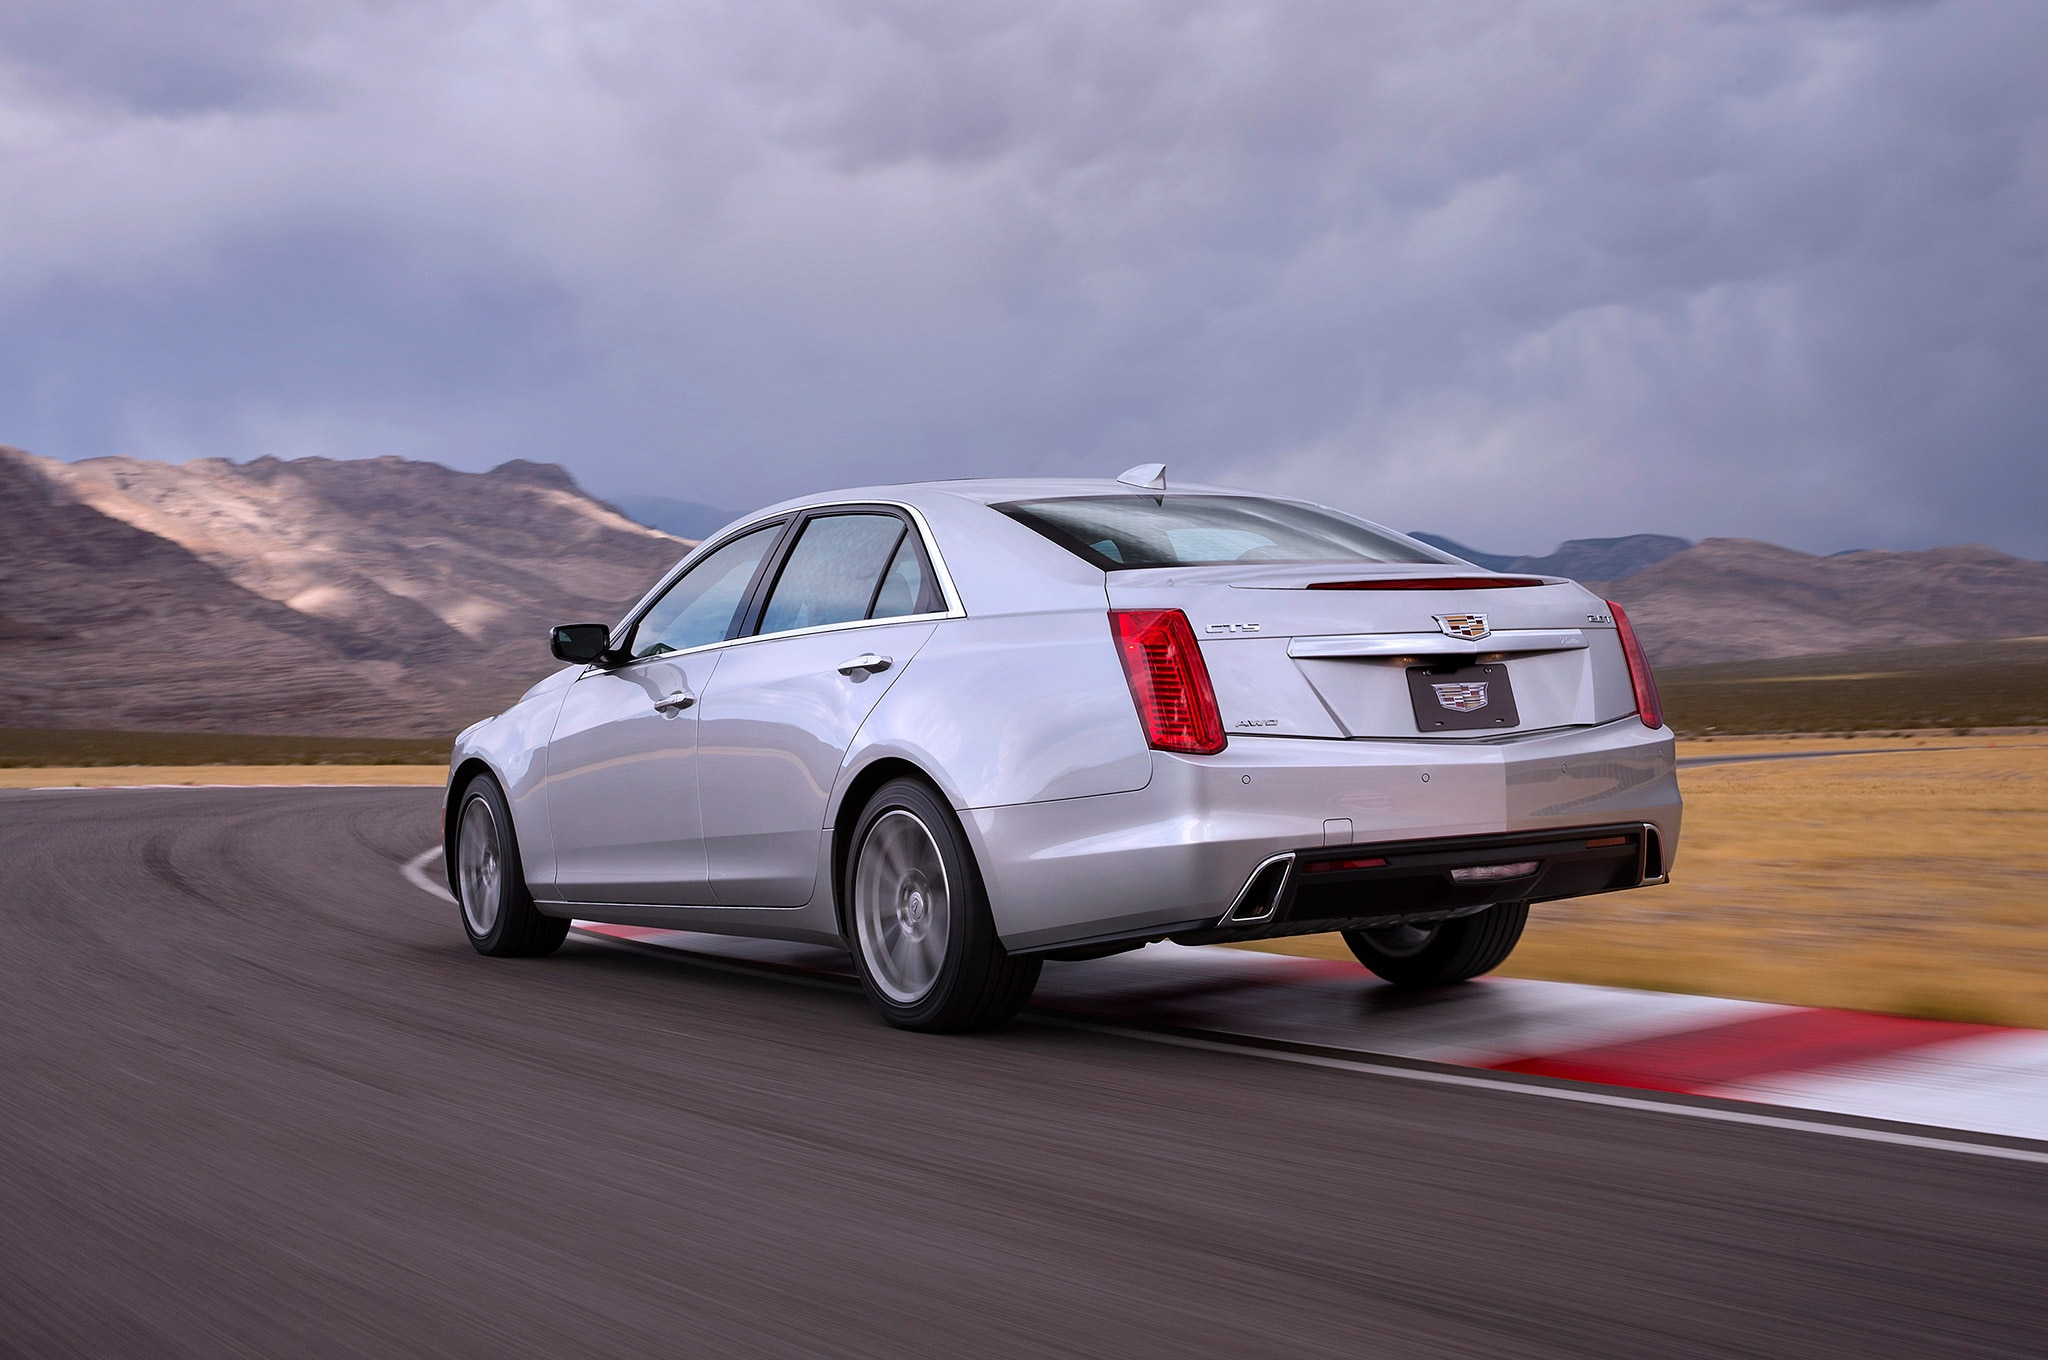 2017-Cadillac-CTS-rear-three-quarters-in-motion-1